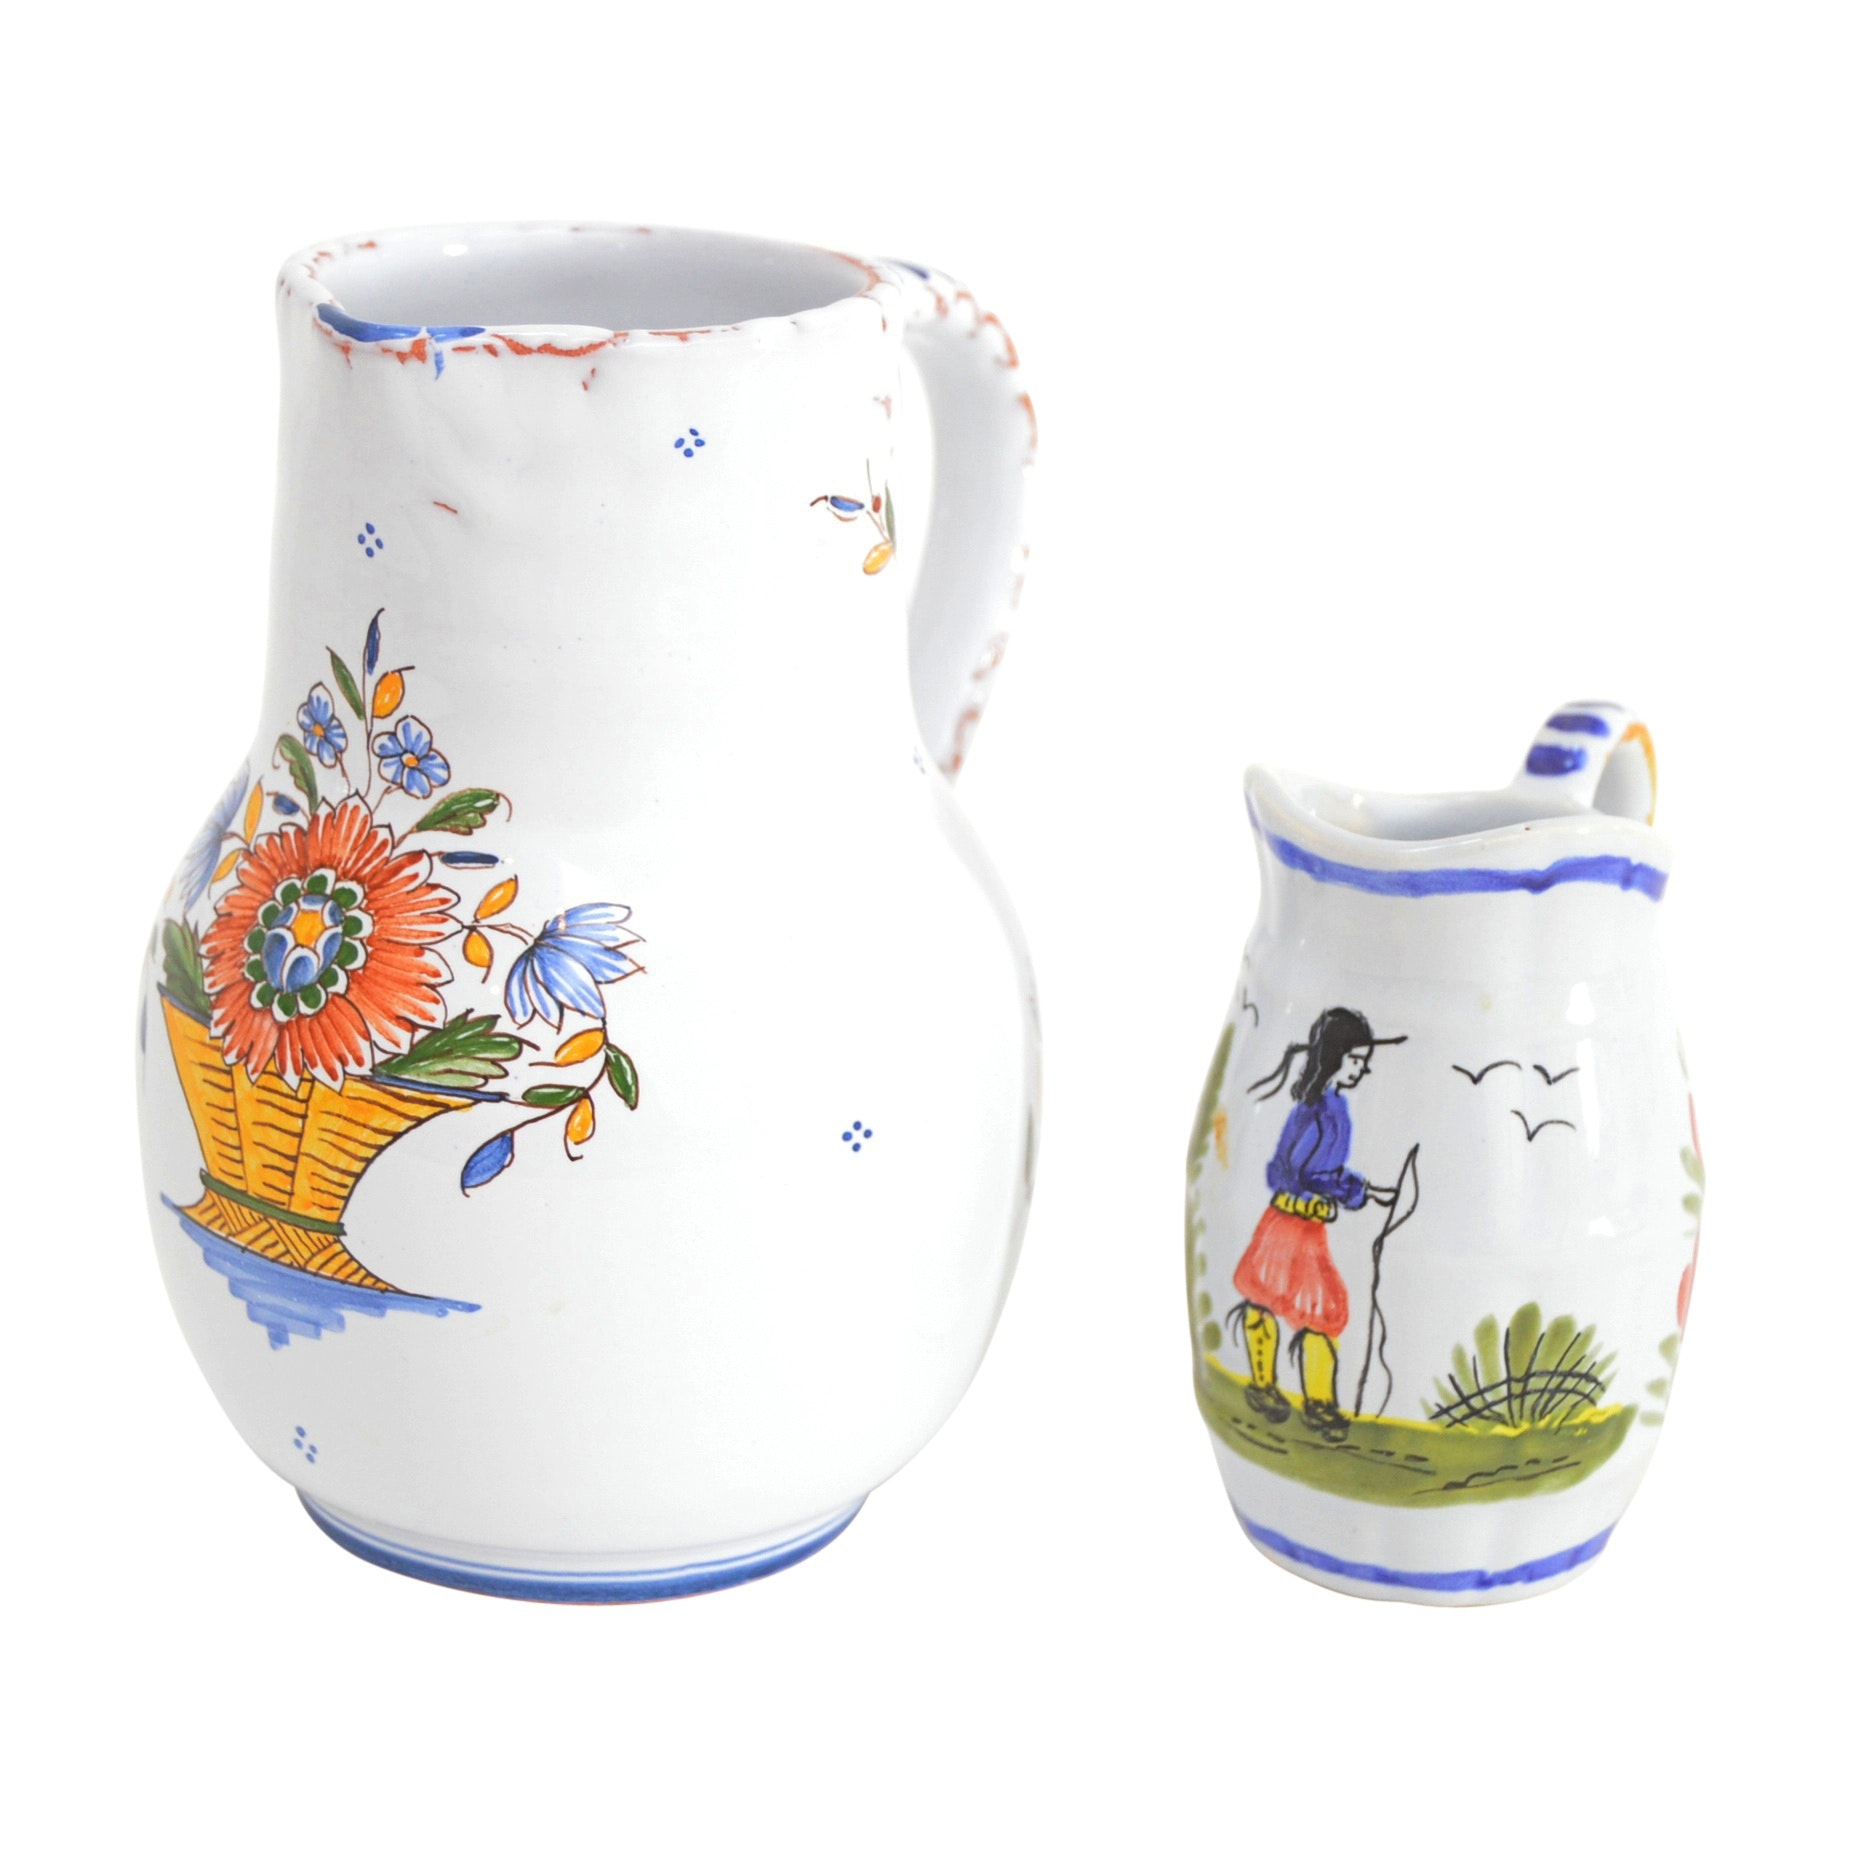 French Faience Pottery Pitchers with Quimper